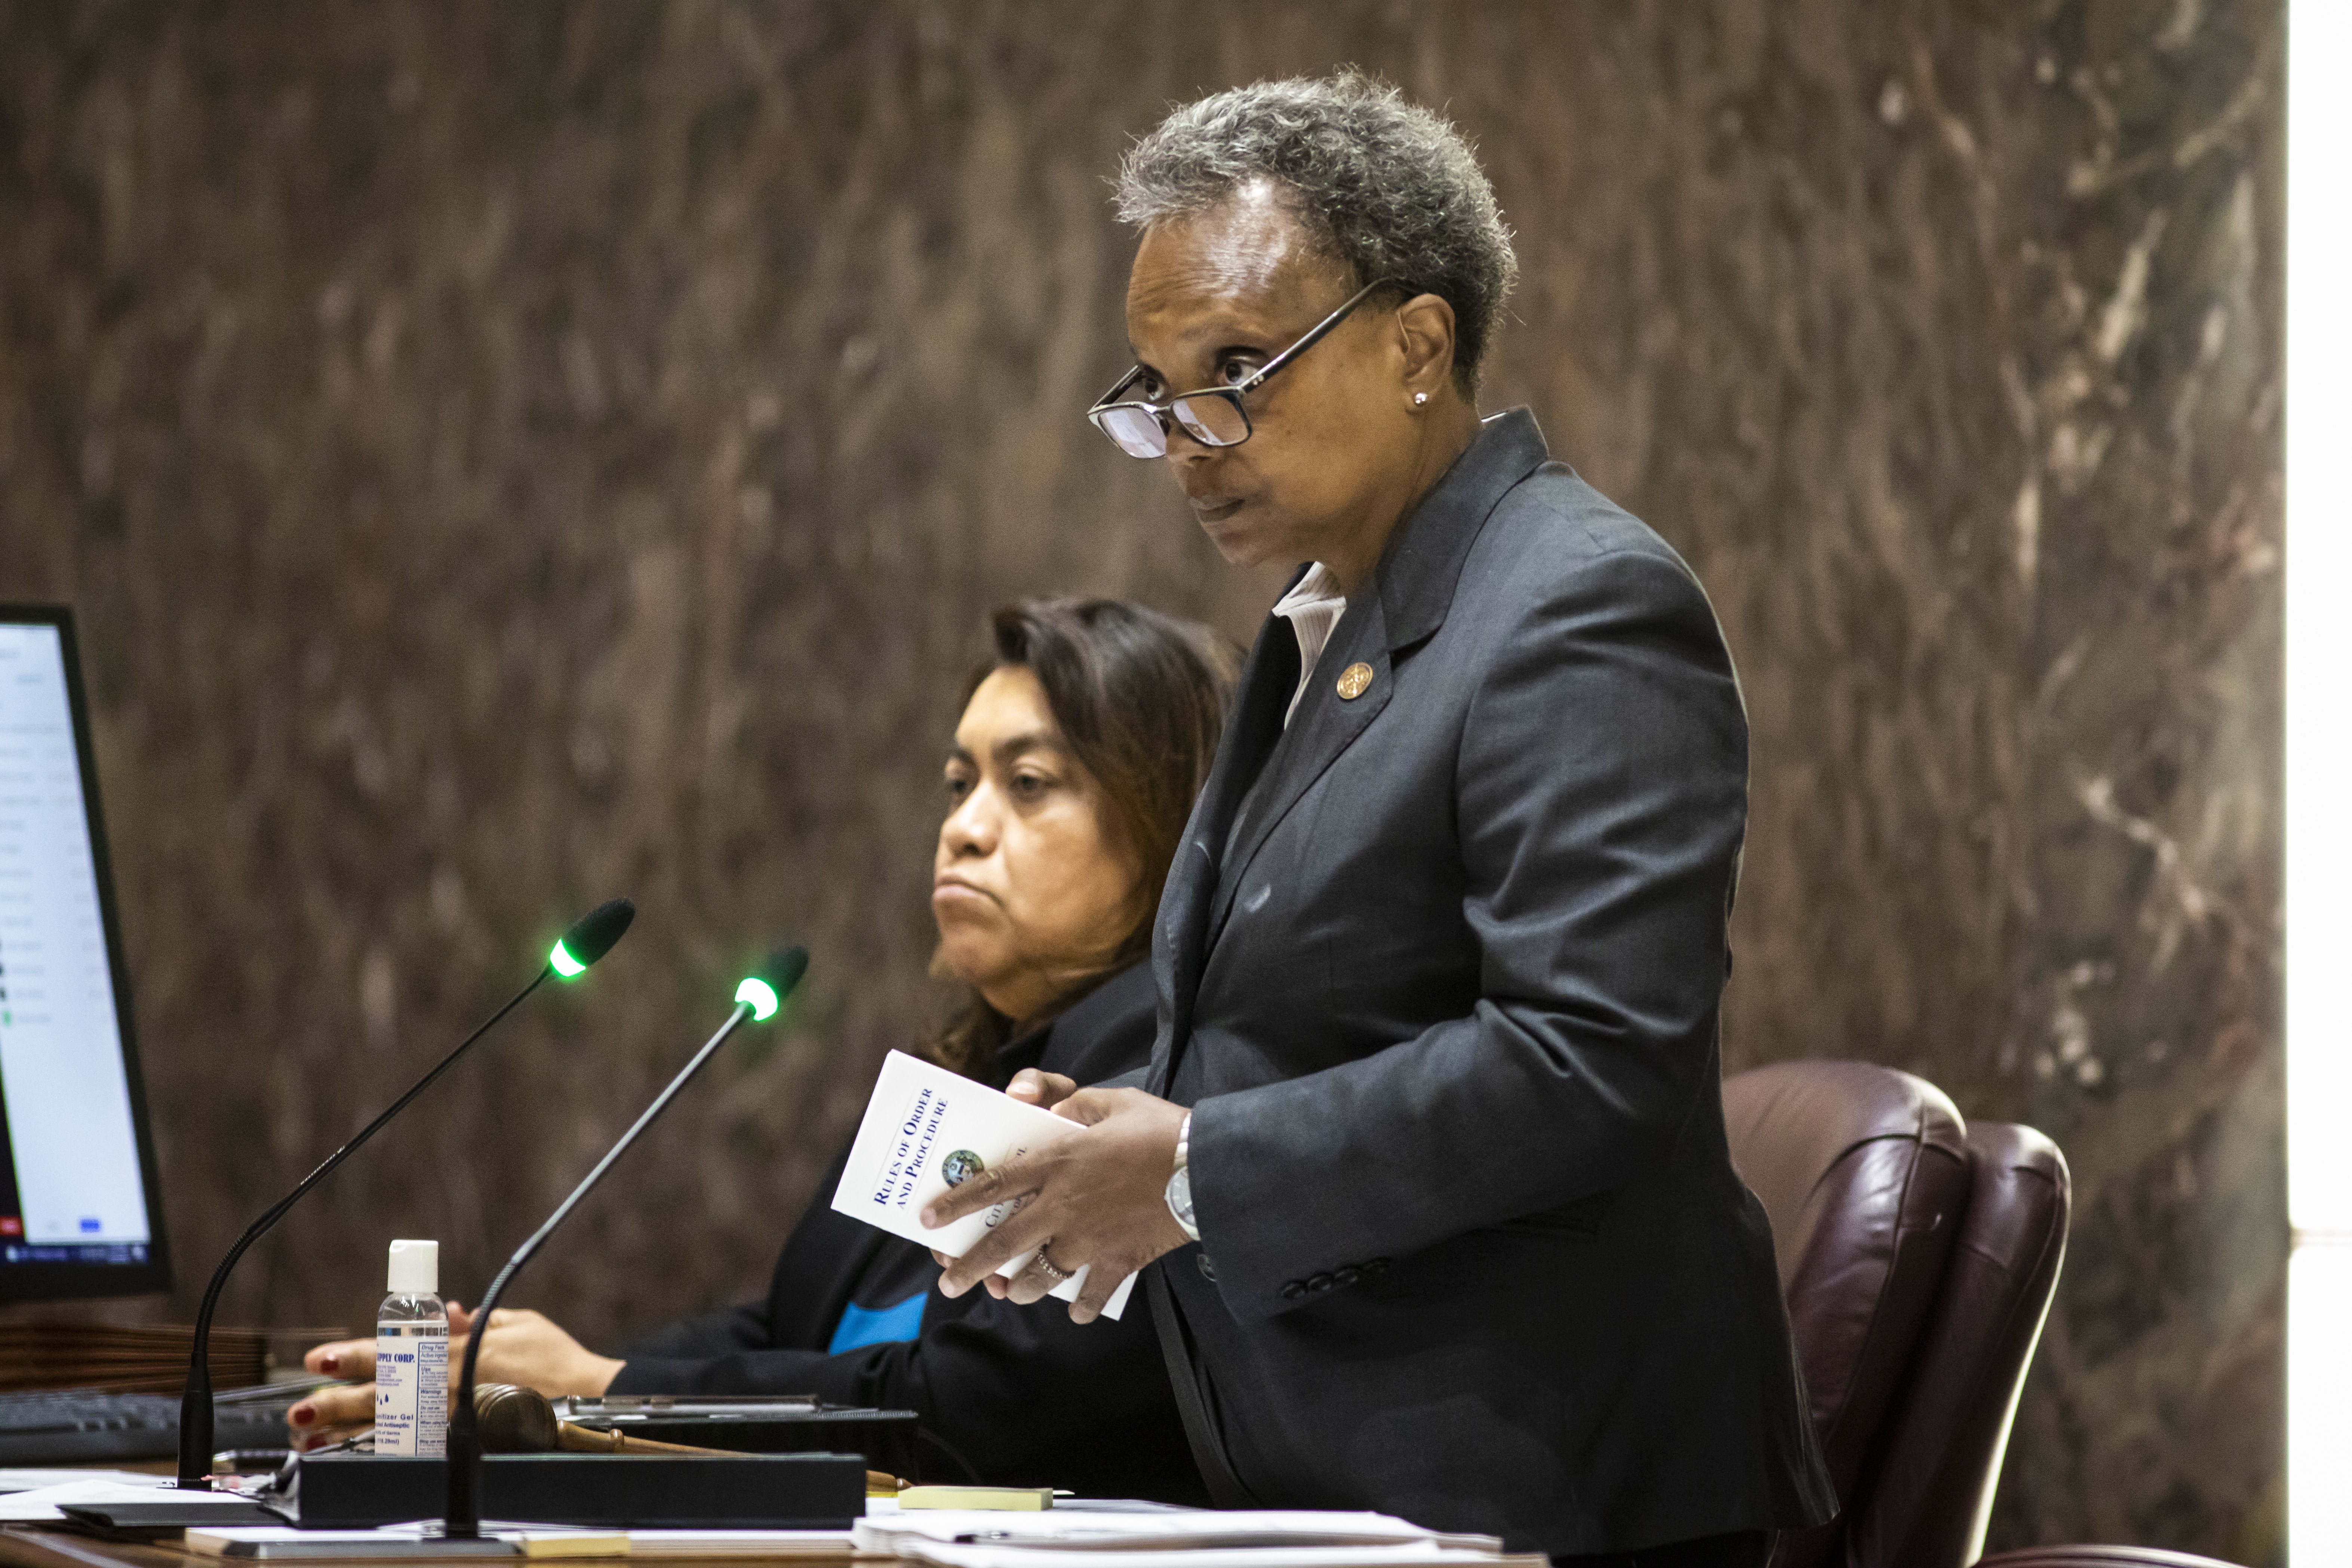 """Mayor Lori Lightfoot presiding at Wednesday's Chicago City Council meeting. In her hands, she's holding a booklet of the Council's """"Rules of Order and Procedure"""" — rules she too often flouts, according to 22 aldermen who sent her a letter of complaint on Thursday, a day after a Council meeting adjourned abruptly, leaving some major business unfinished."""